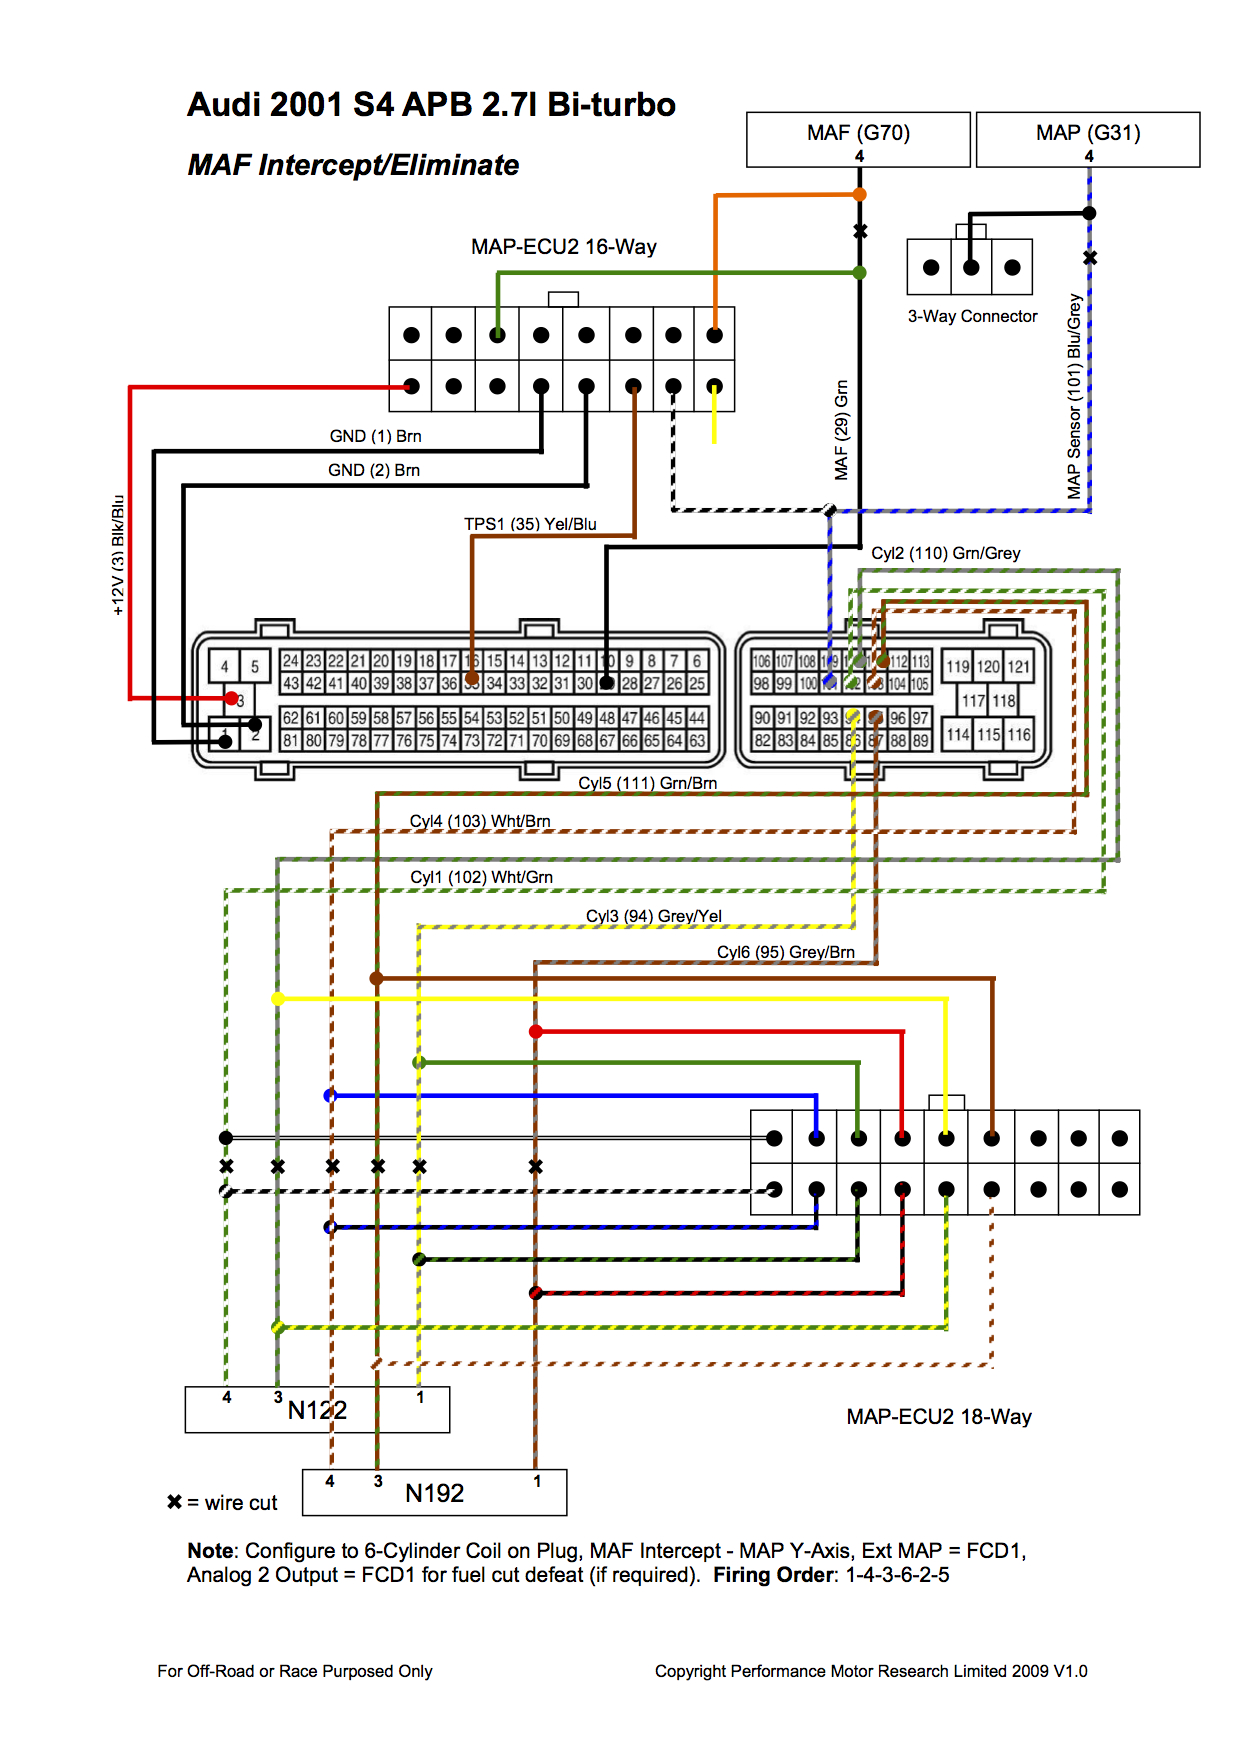 Audi S4 20011 mapecu wiring diagrams audi, bmw, ford, honda, lexus, nissan, toyota 1az fse wiring diagram download at alyssarenee.co